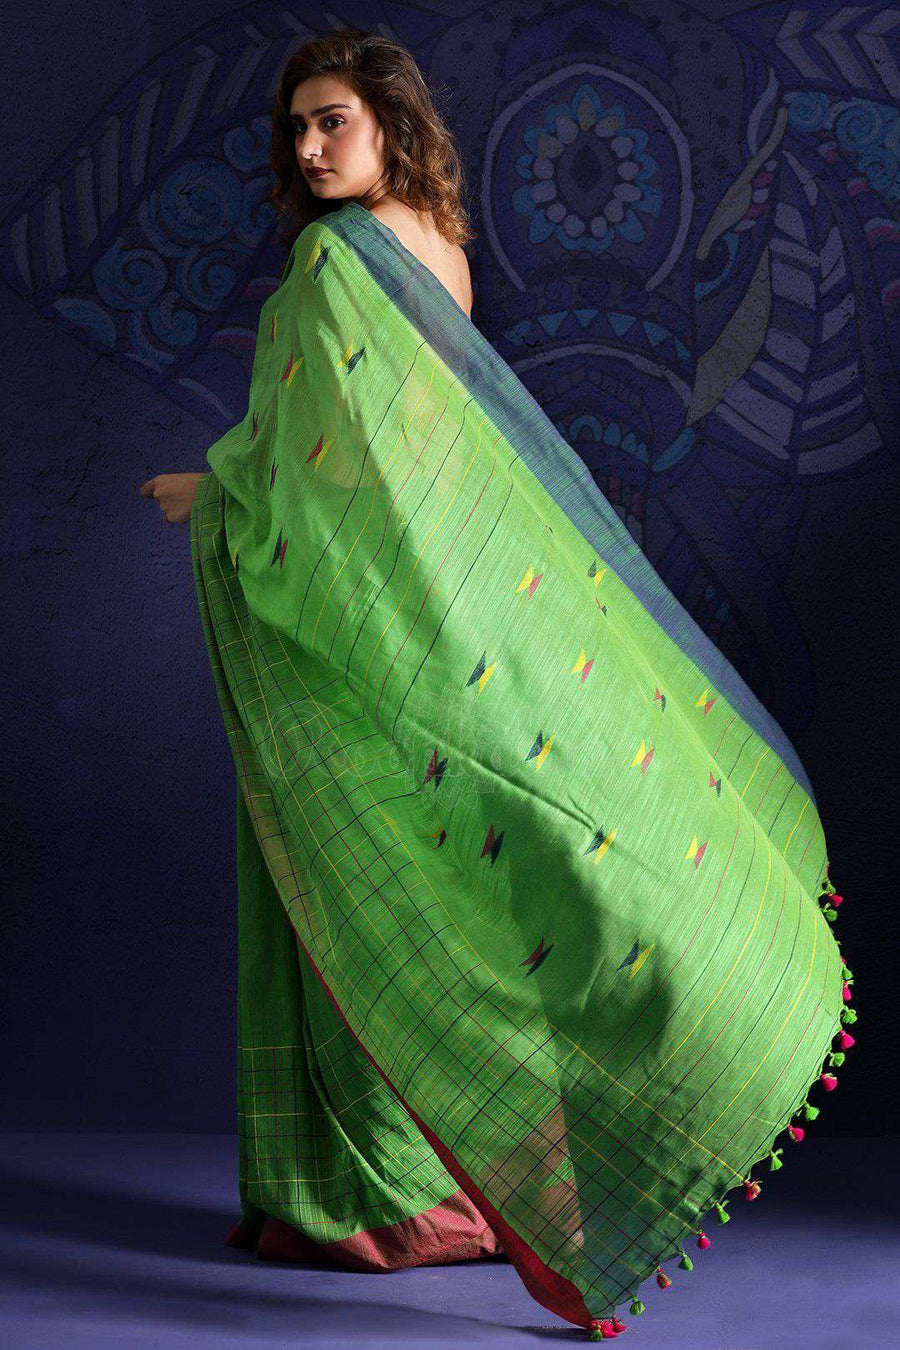 Green Pure Cotton Saree With Thread Stitch Cotton Threads Of India Roopkatha - A Story of Art